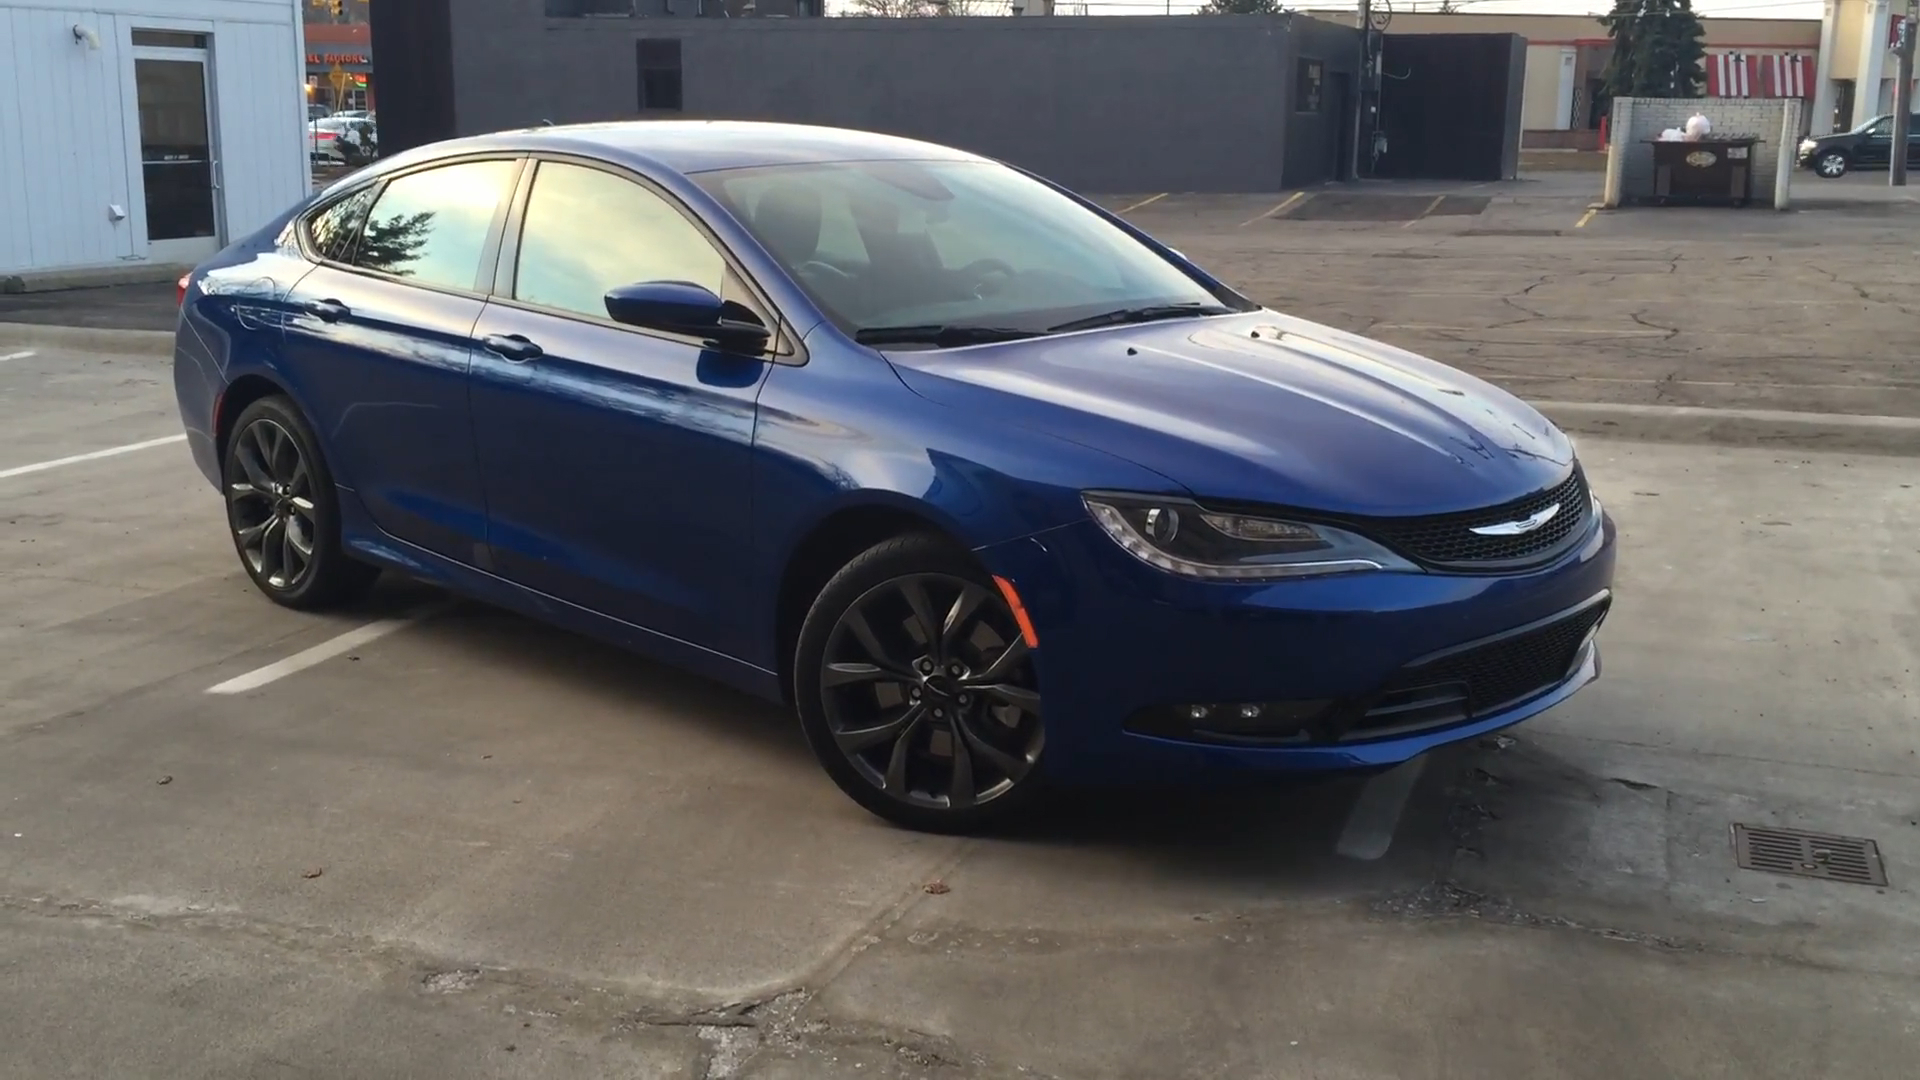 Marchionne Says The Chrysler 200 And Dodge Dart Were Terrible Investments For Fca Autoblog